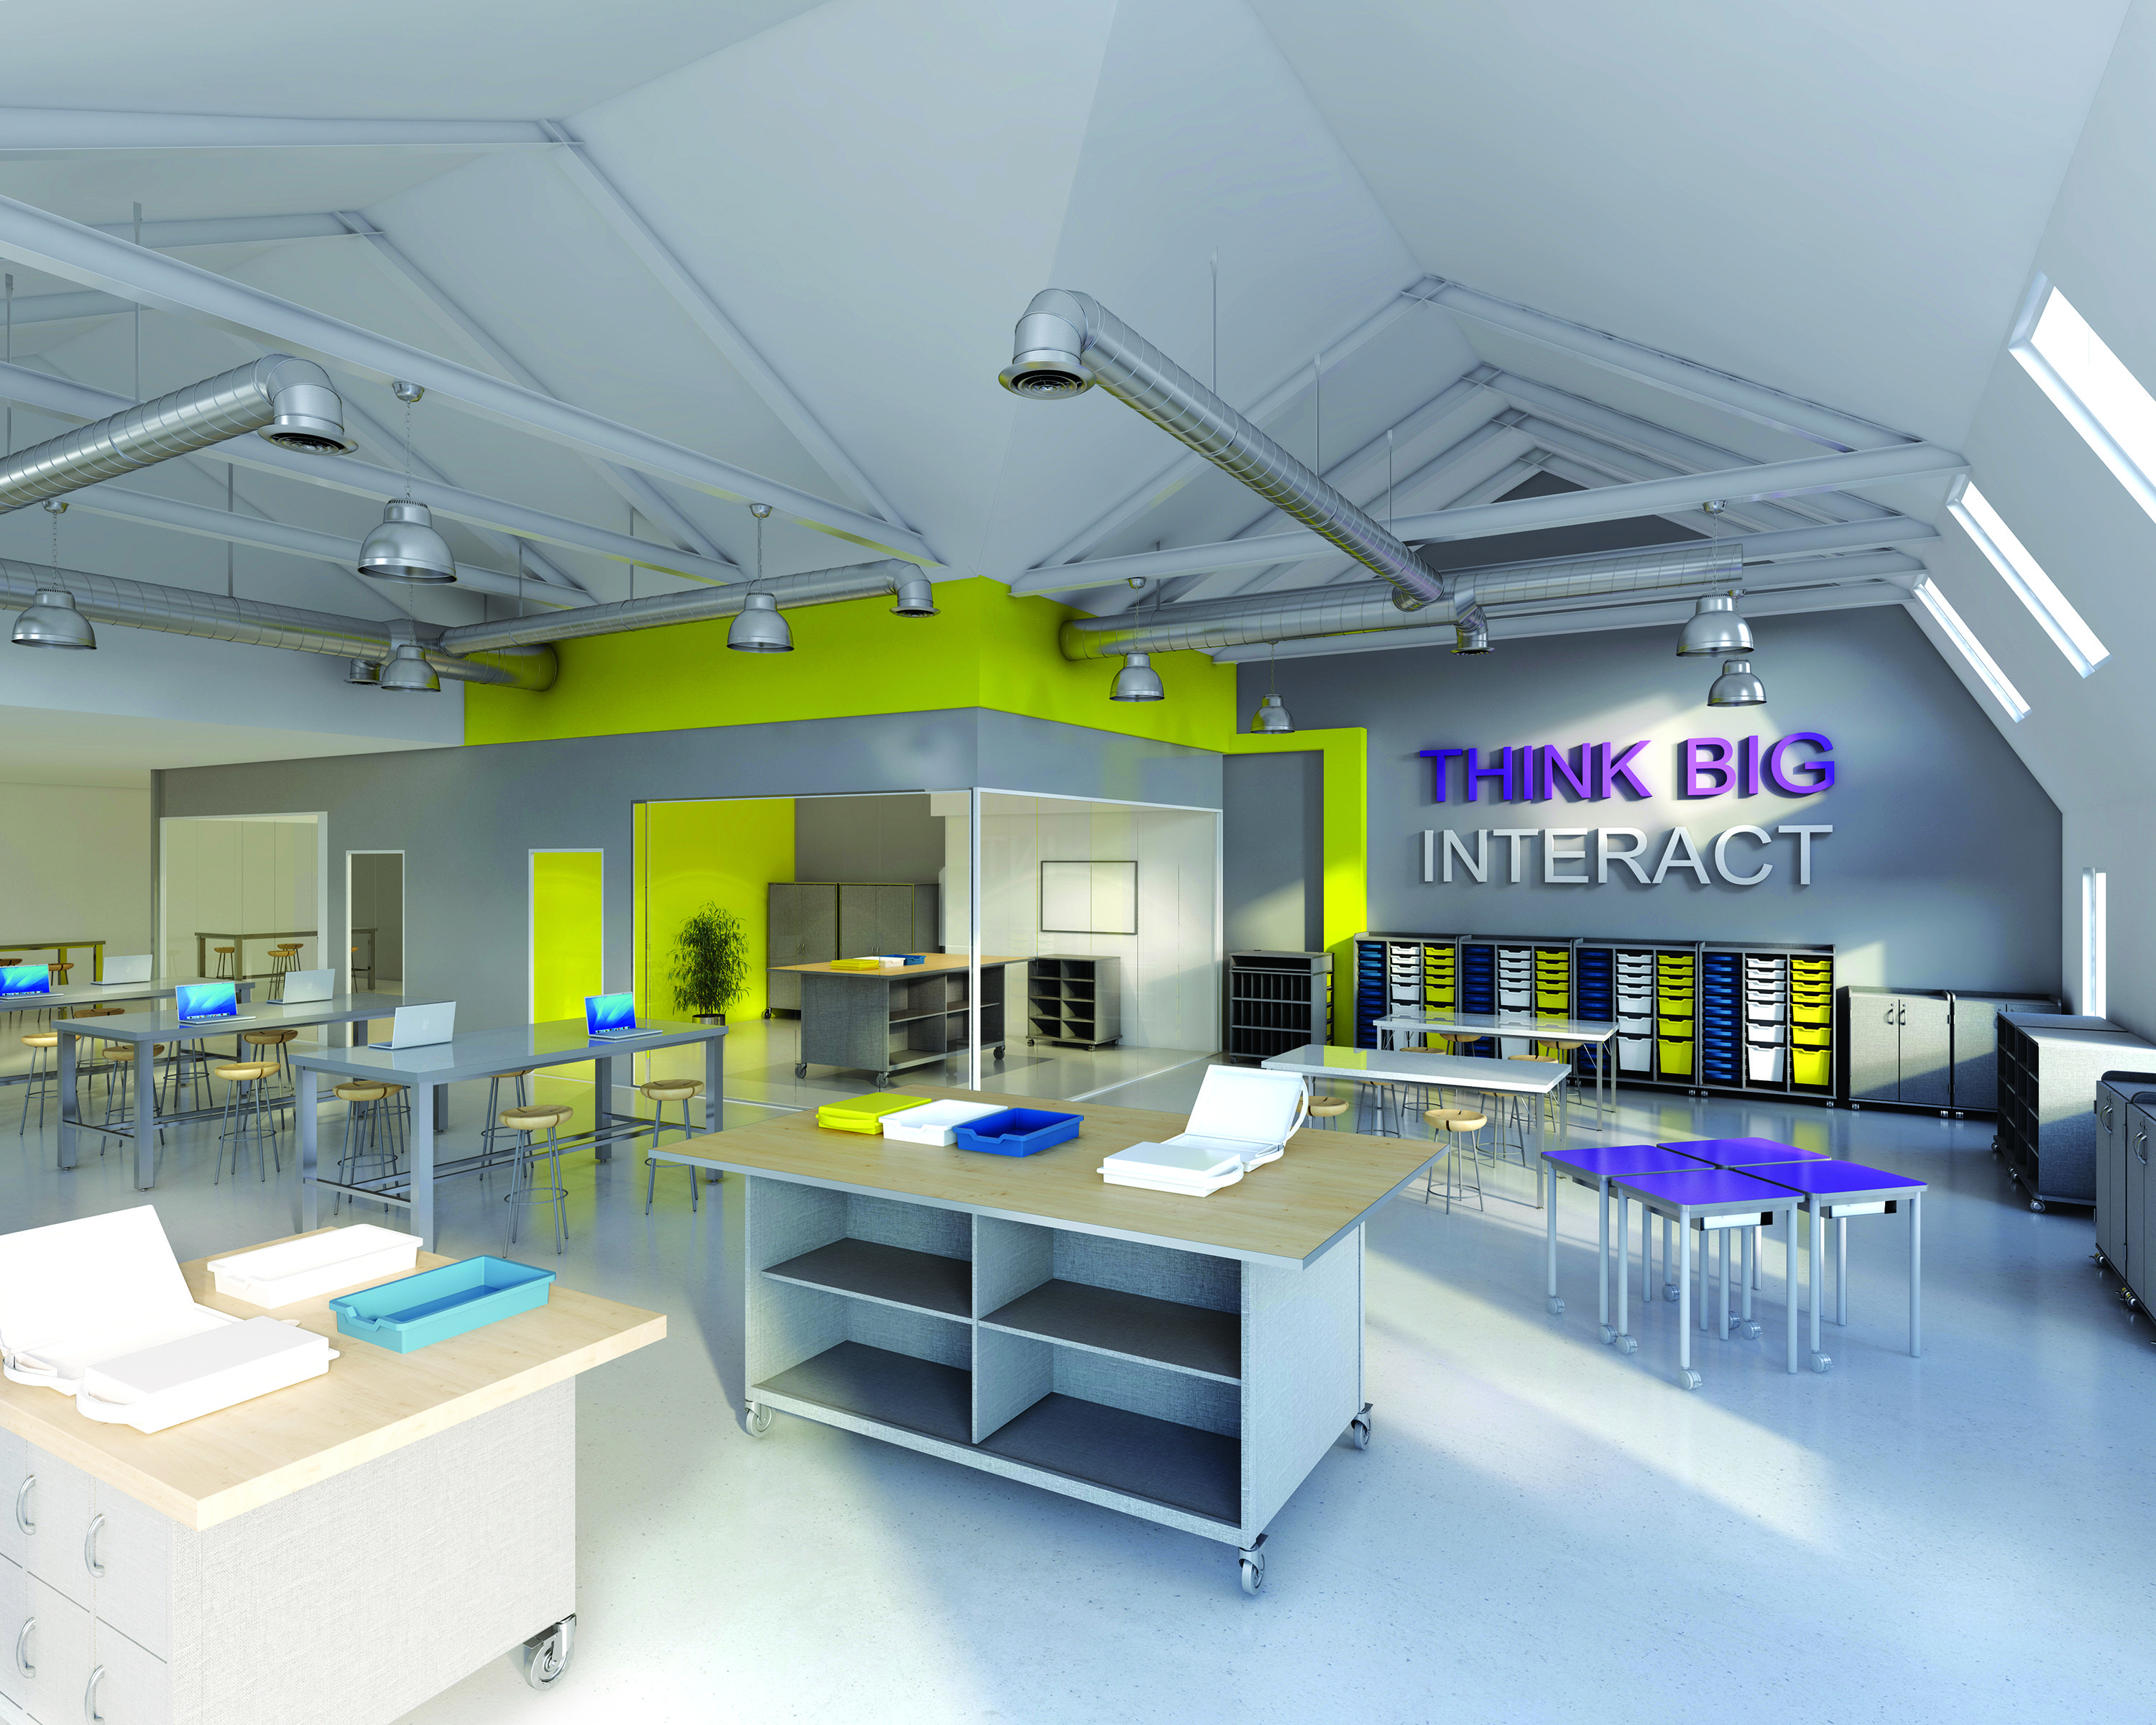 Maker space furniture by fleetwood group crec academy of for School blueprint maker